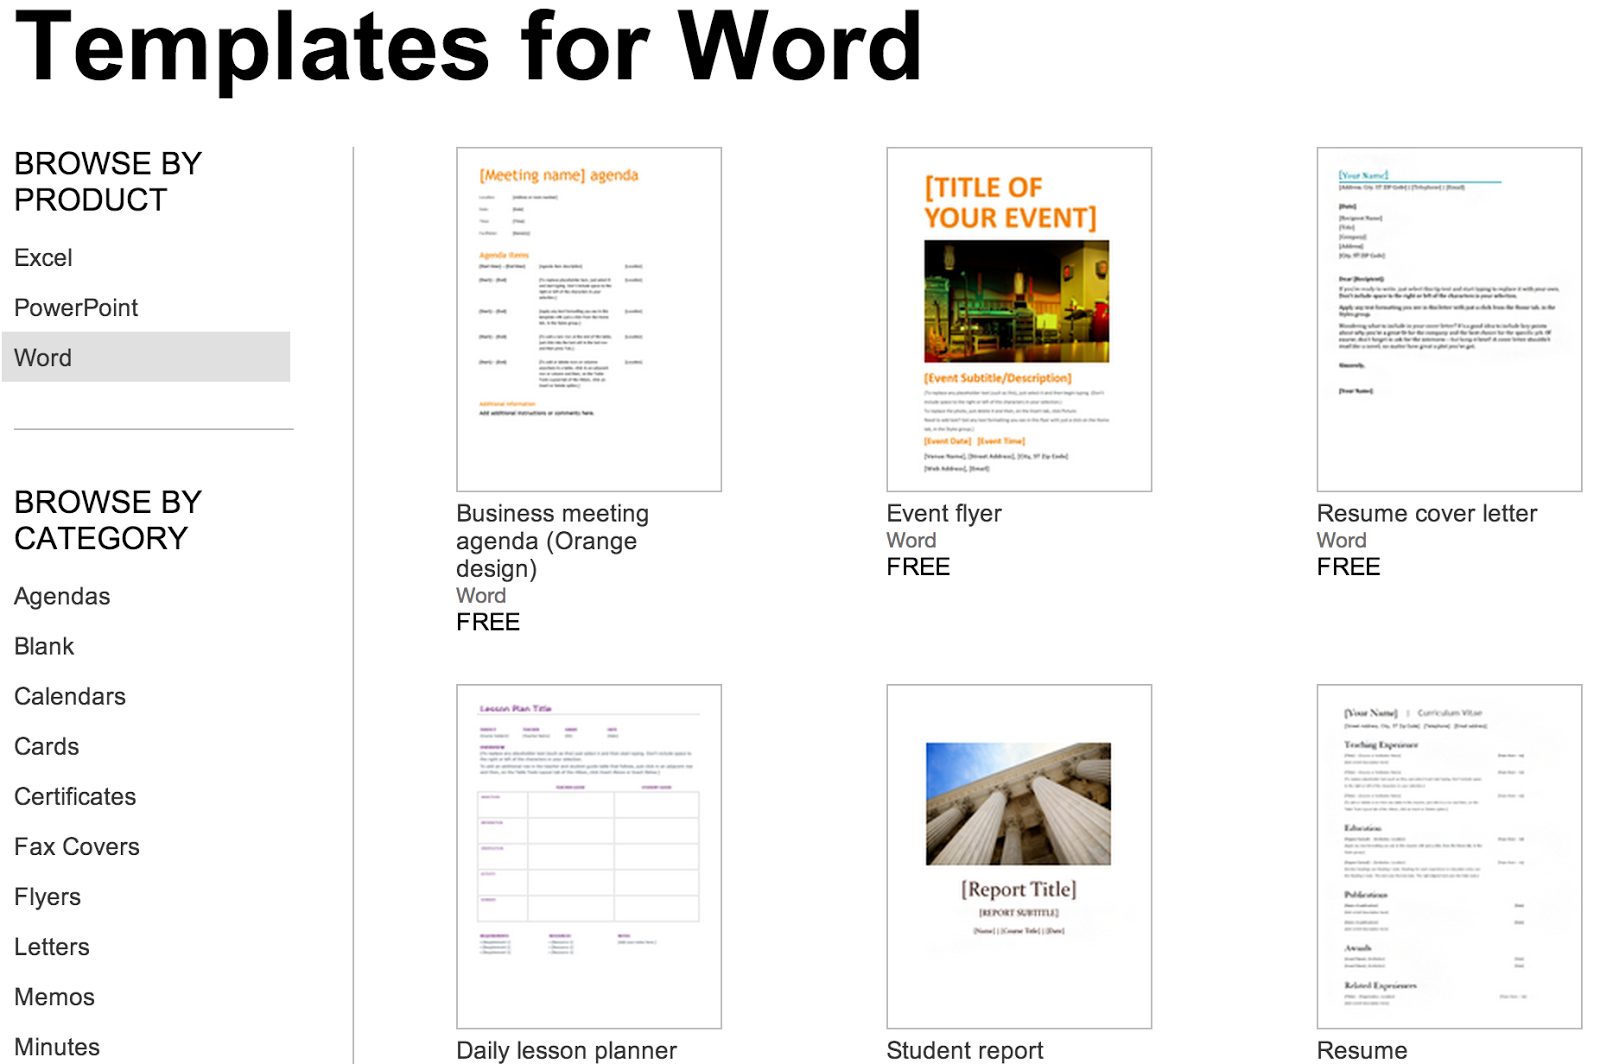 Over 250 Free Microsoft Office Templates & Documents For Hours Of Operation Template Microsoft Word